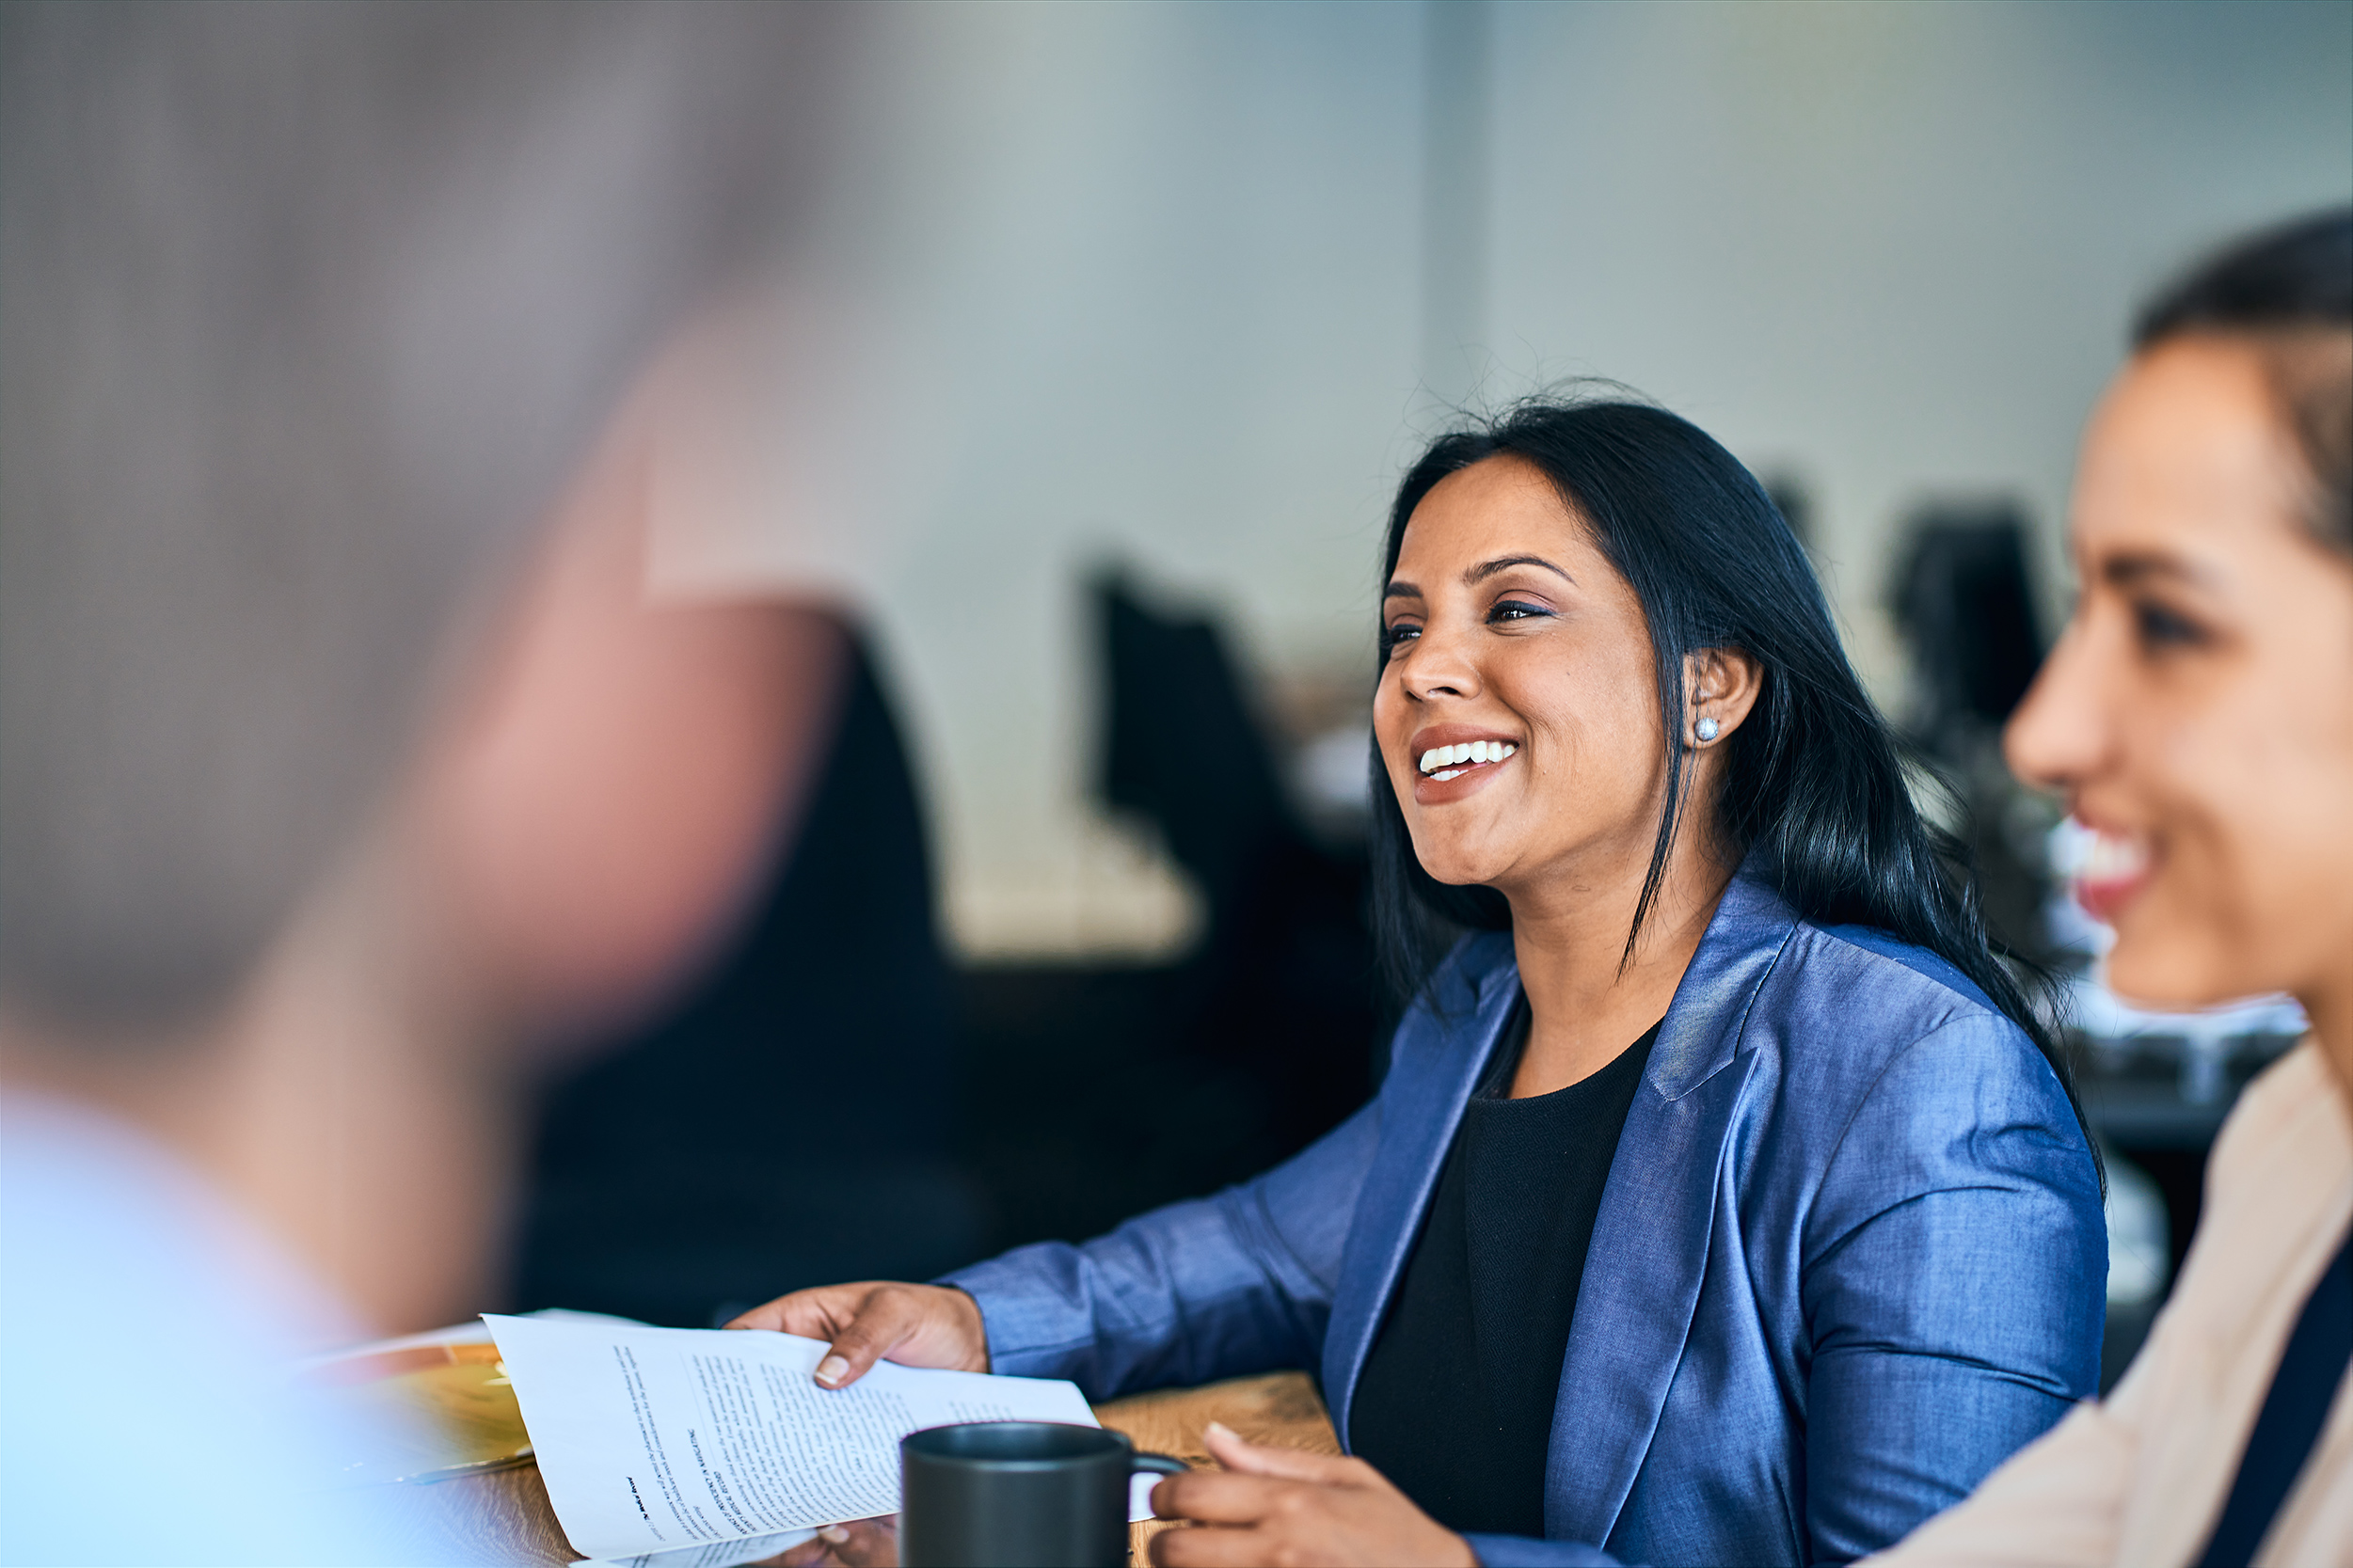 Businesswoman laughing while working with colleagues around a table in a modern open plan office